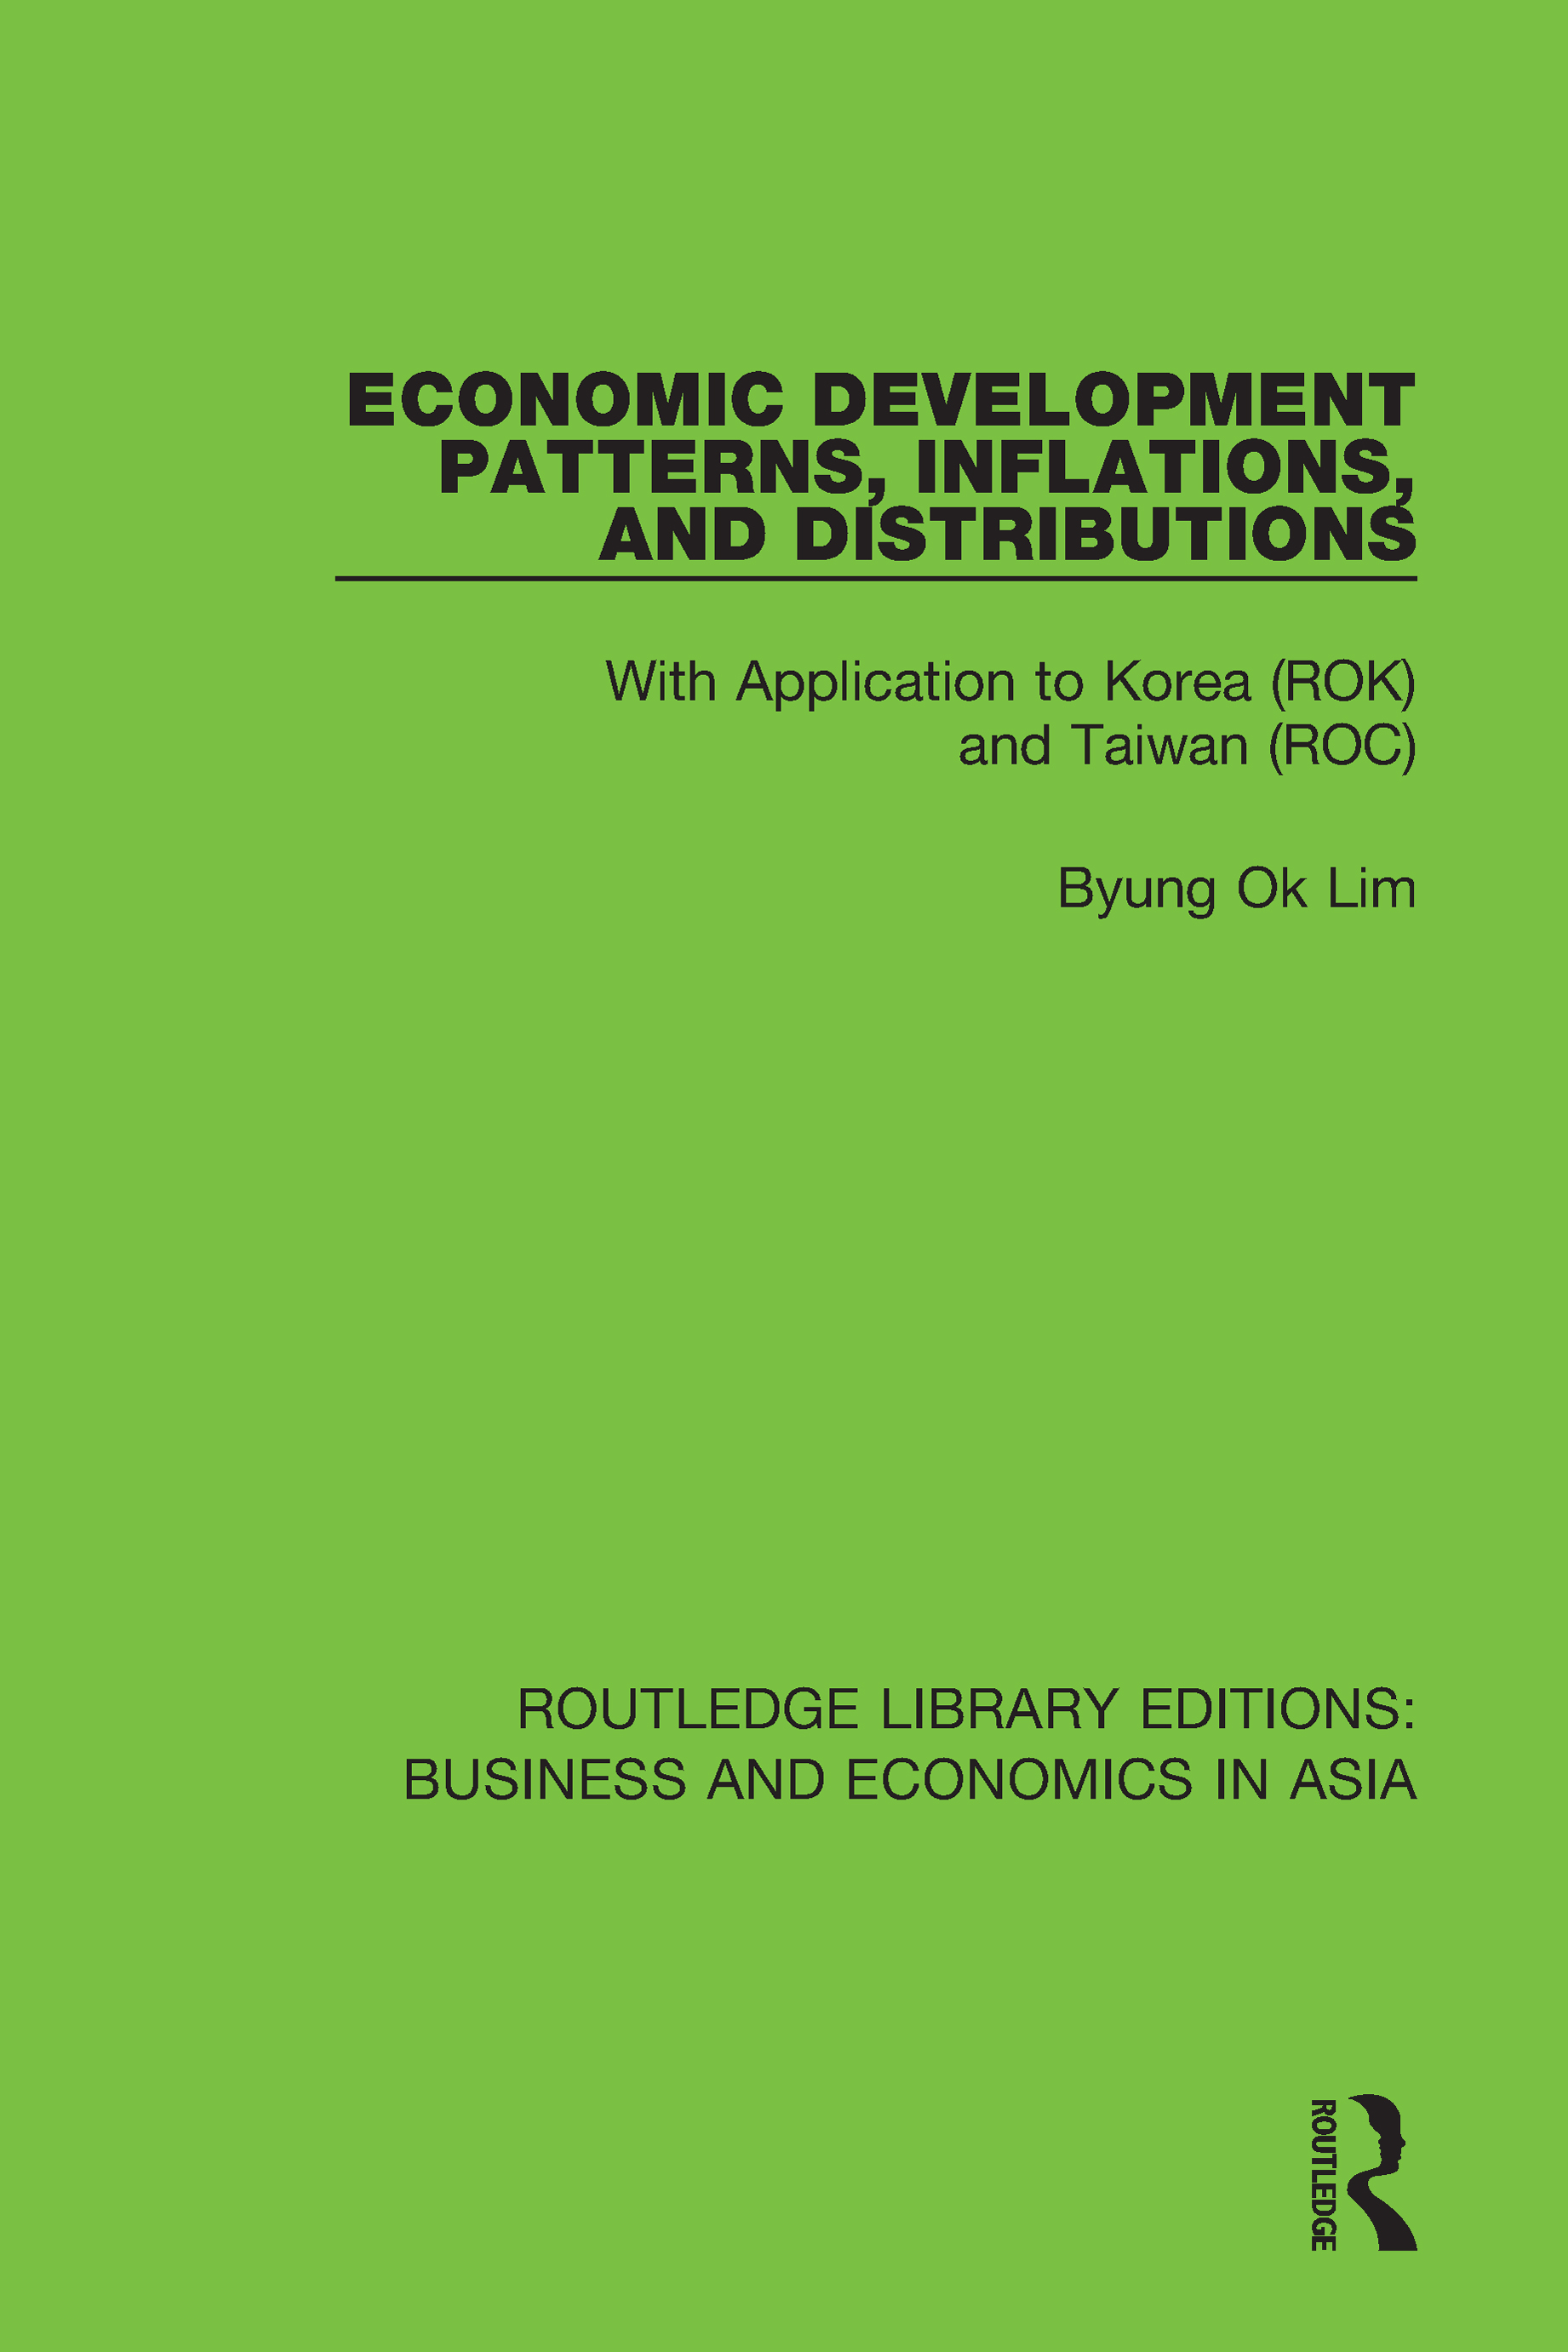 Economic Development Patterns, Inflations, and Distributions: With Application to Korea (ROK) and Taiwan (ROC) book cover